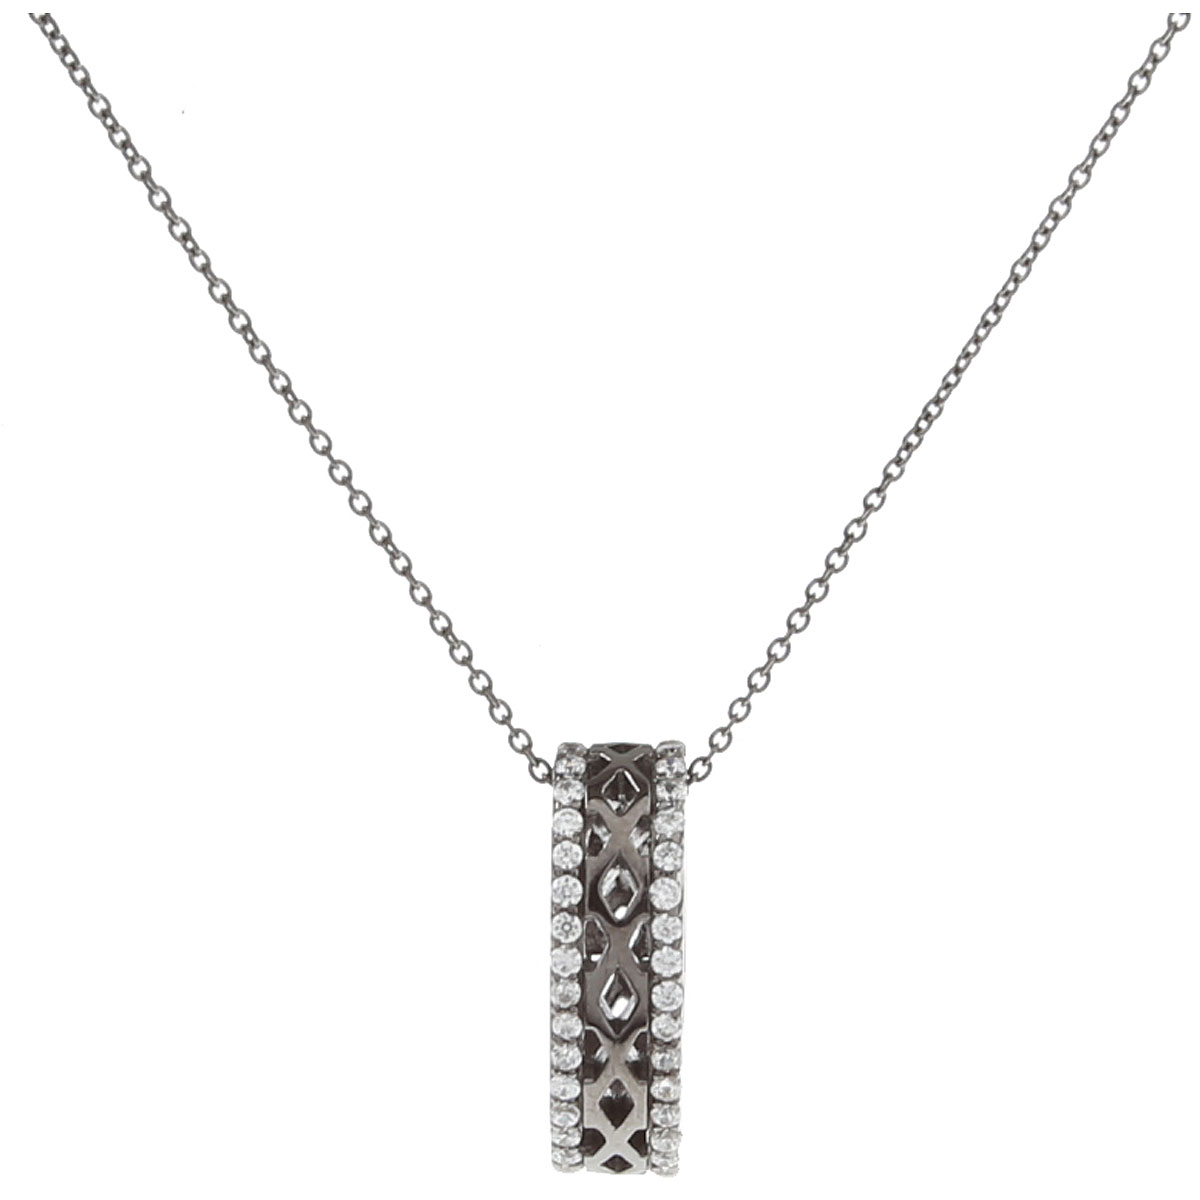 APM Monaco Necklaces On Sale, Black, Silver 925, 2019